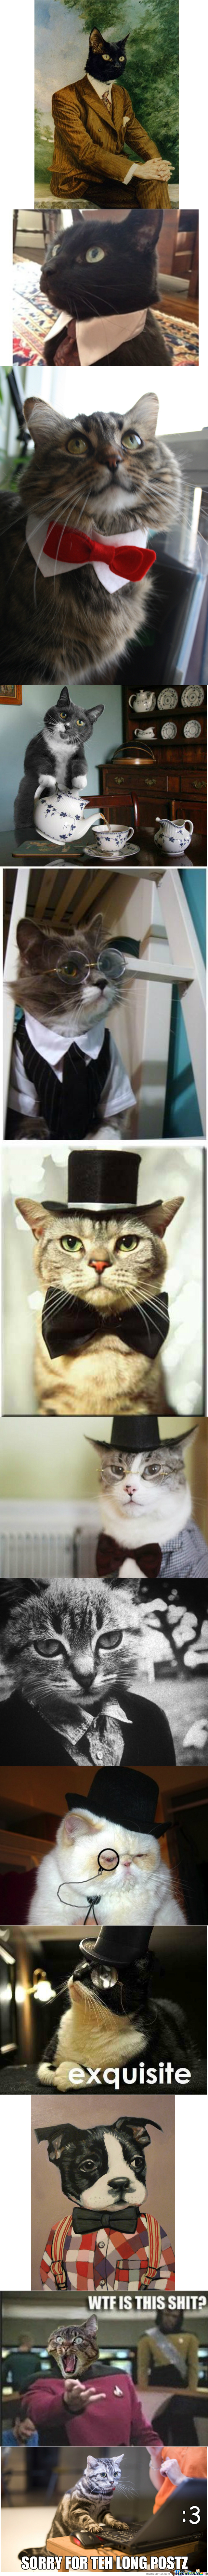 Brace Yourselves, The Fancy Cats Are Coming